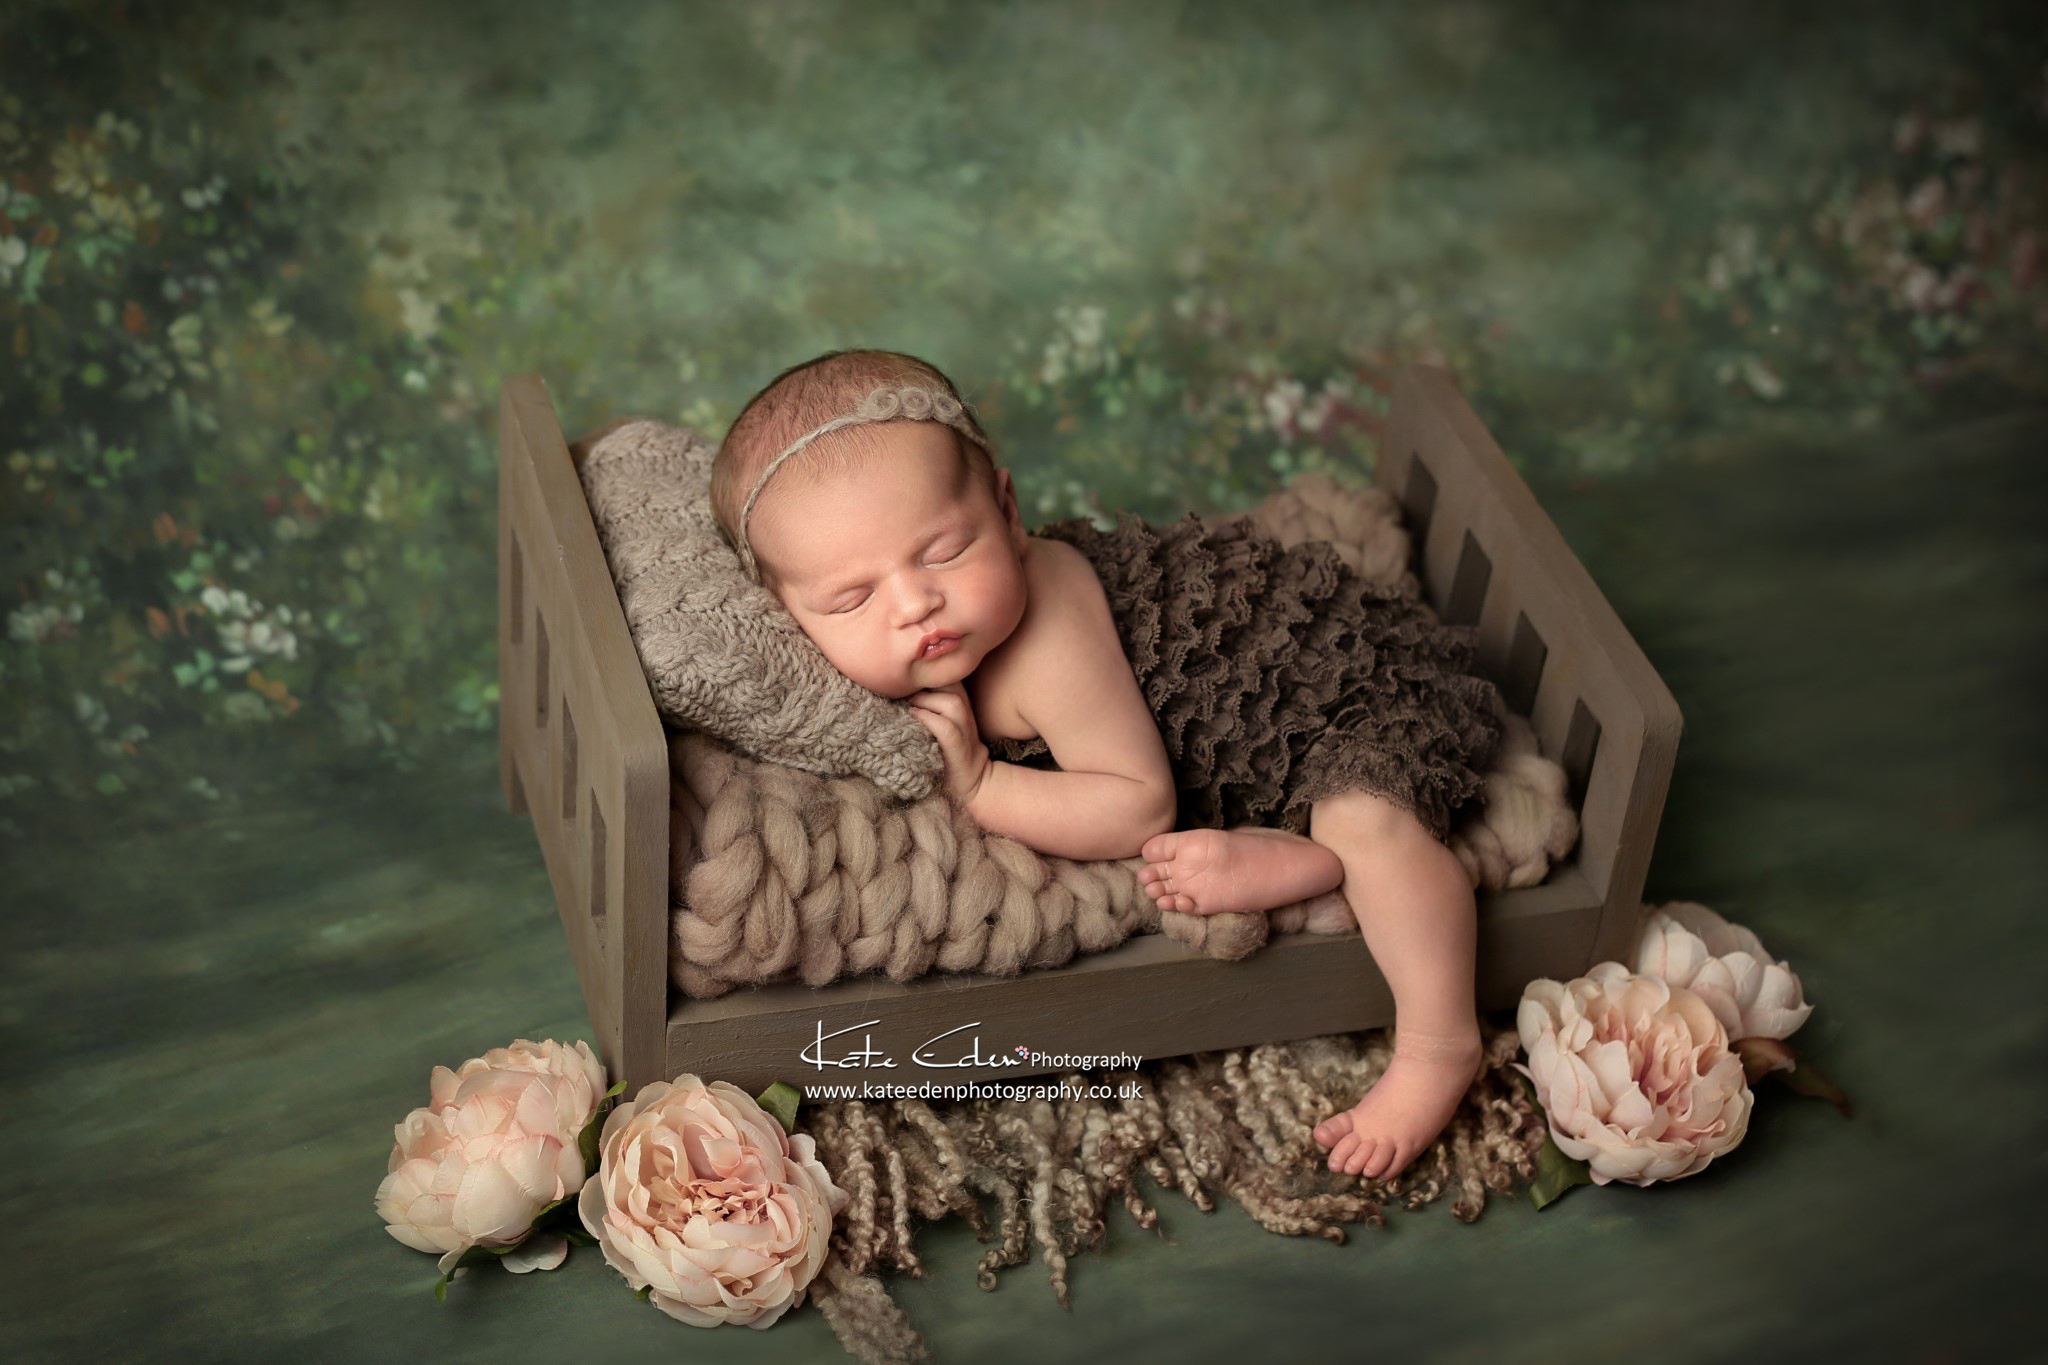 Newborn baby girl in a little bed - Kate Eden Photography - Milton Keynes photographer